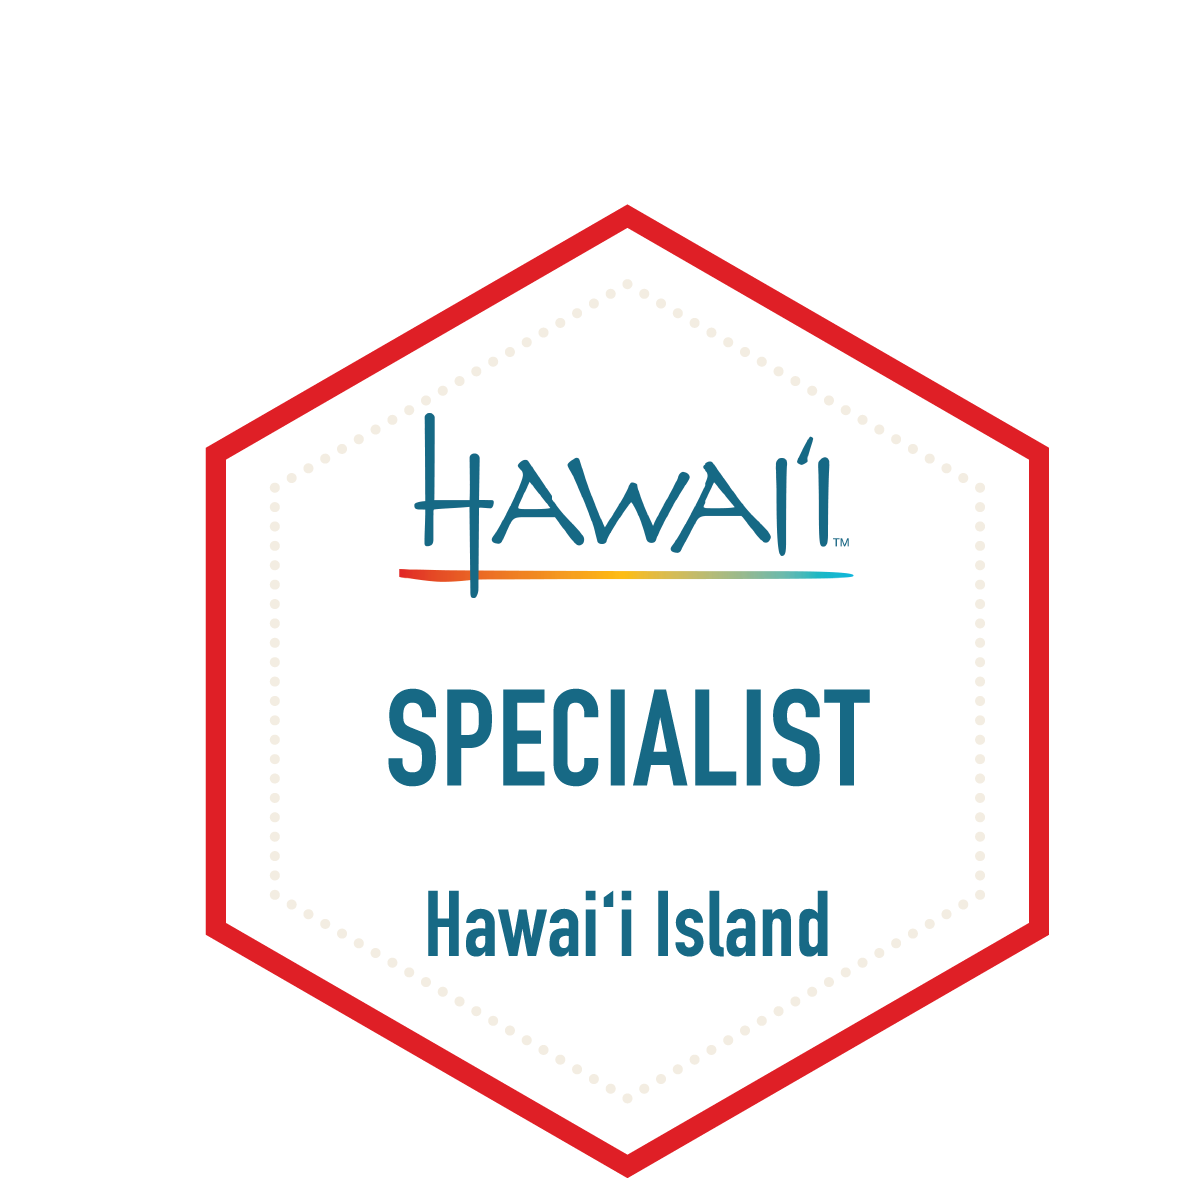 HS_badge_Hawaii